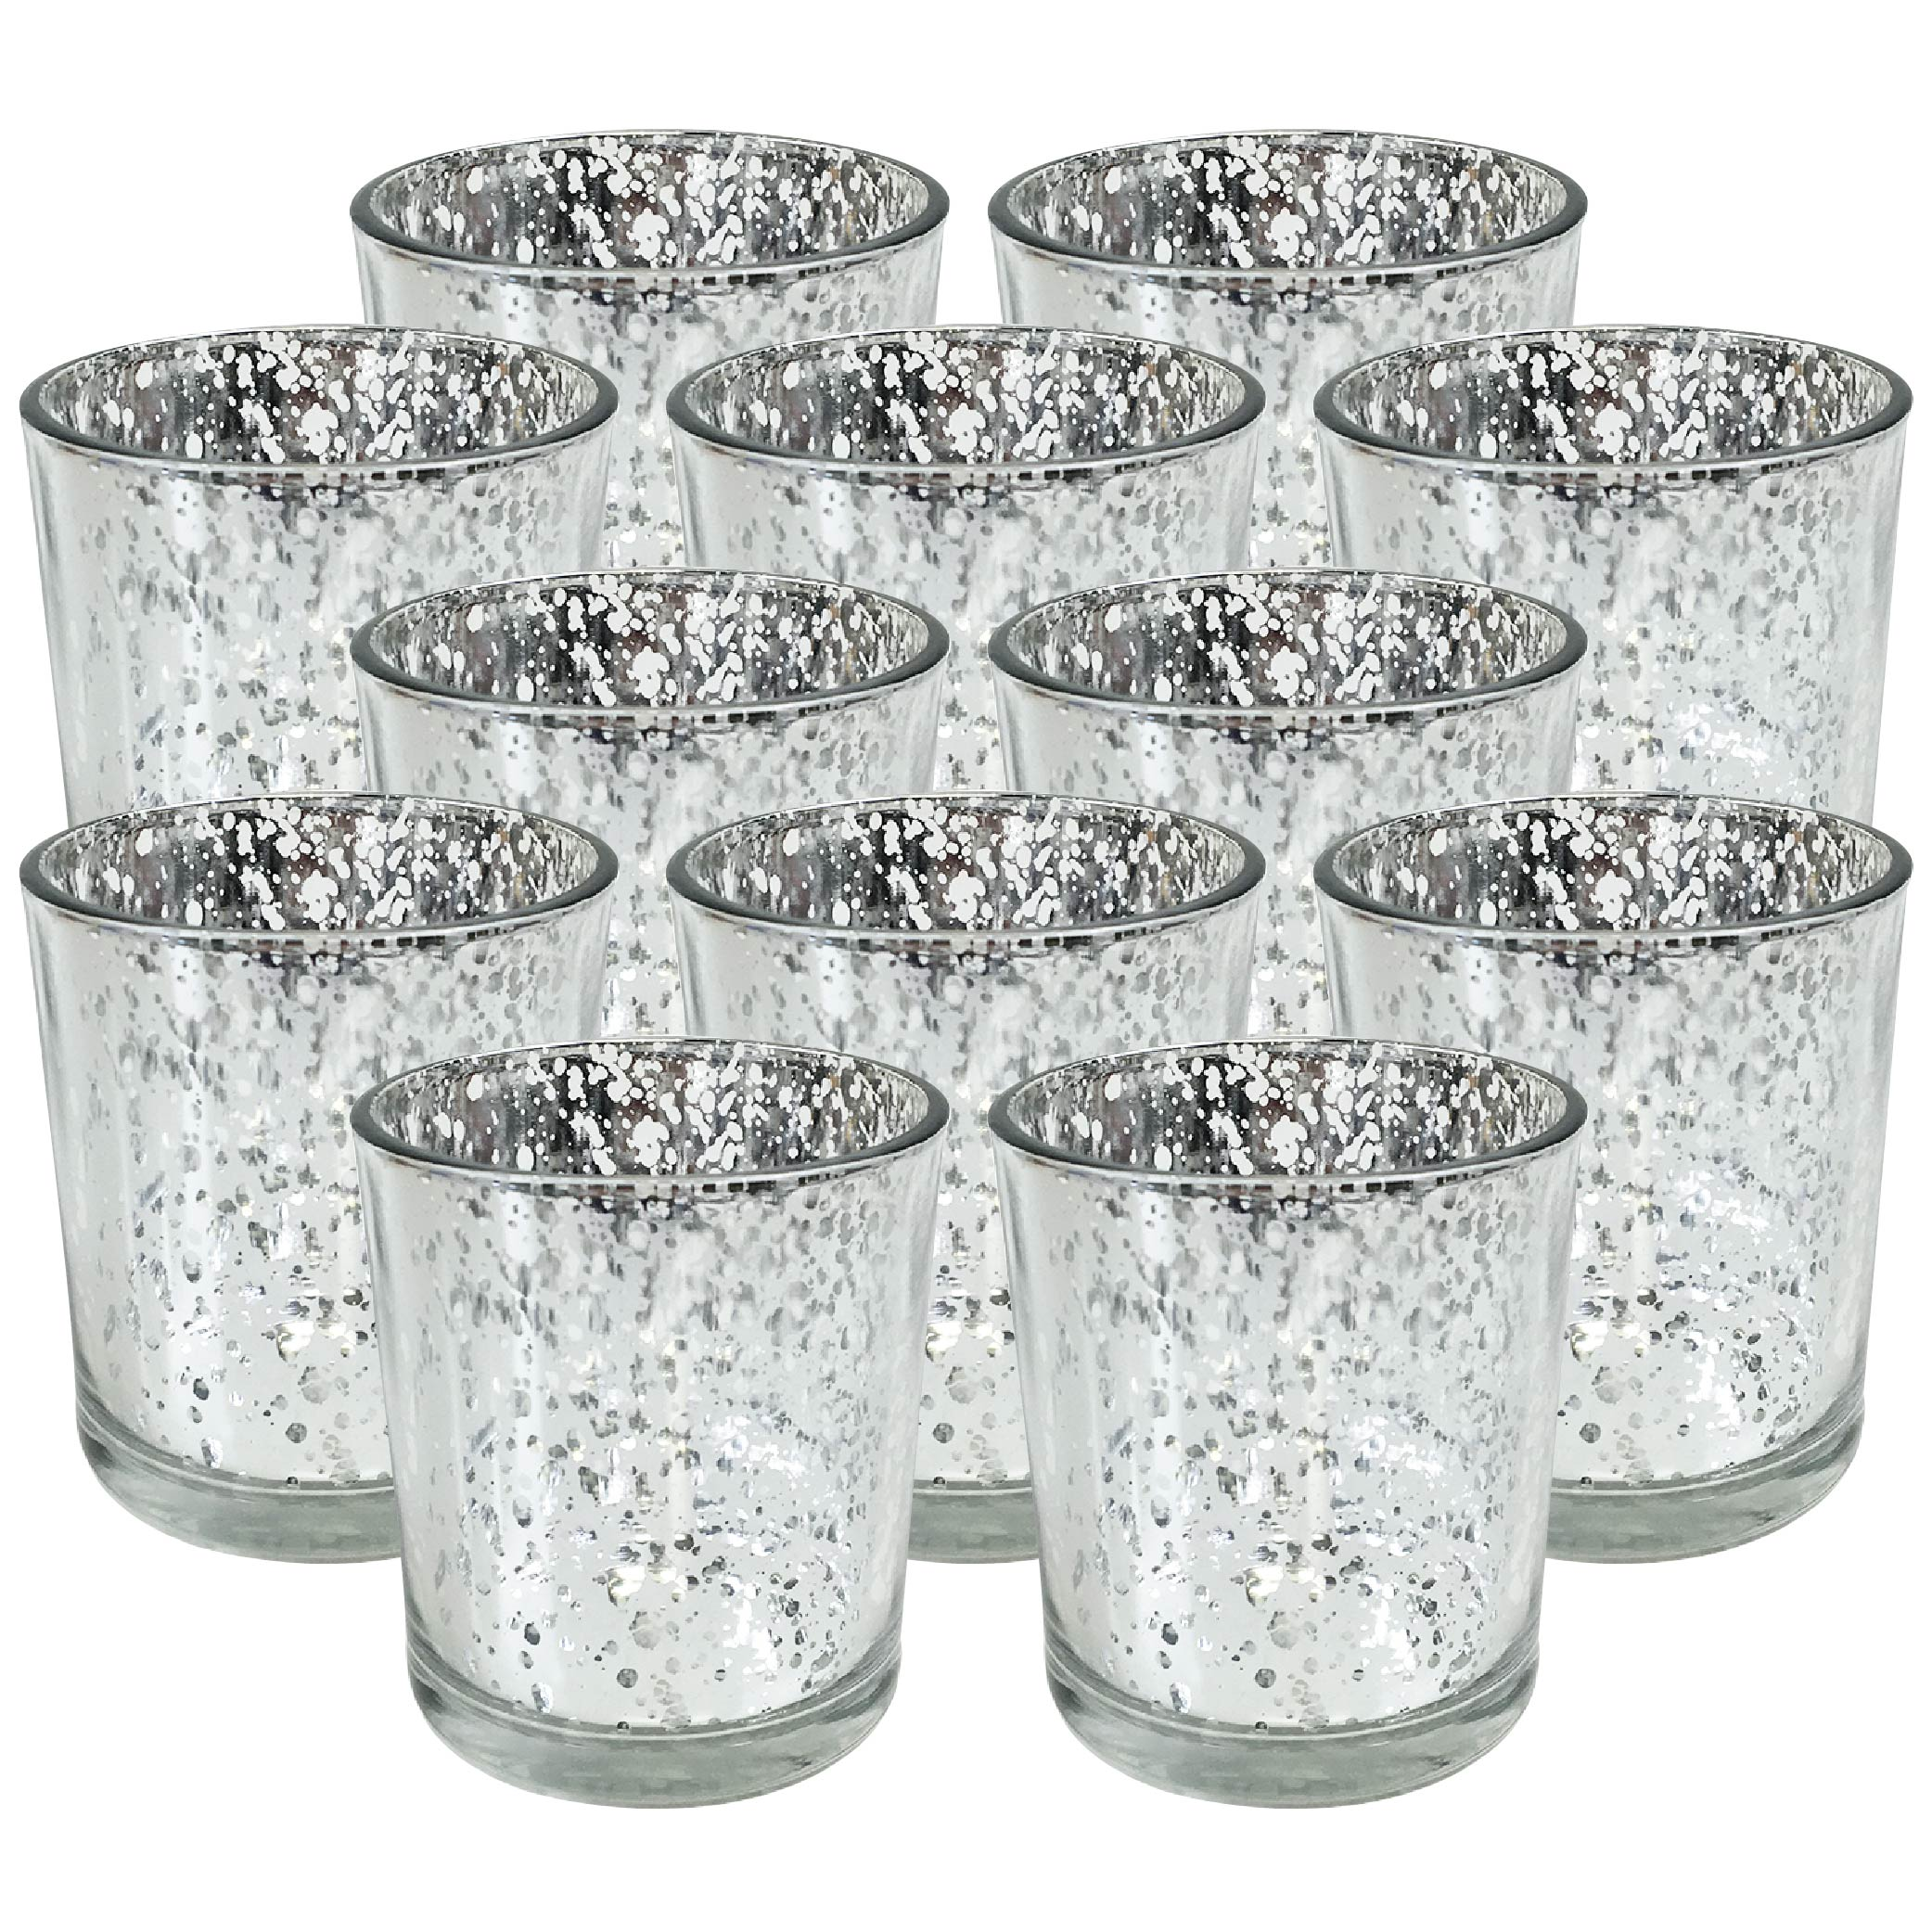 """Just Artifacts Mercury Glass Votive Candle Holder 3""""H (Set of 12, 3""""H, Speckled Silver) -Mercury Glass Votive Tealight Candle Holders for Weddings, Parties and Home Decor"""